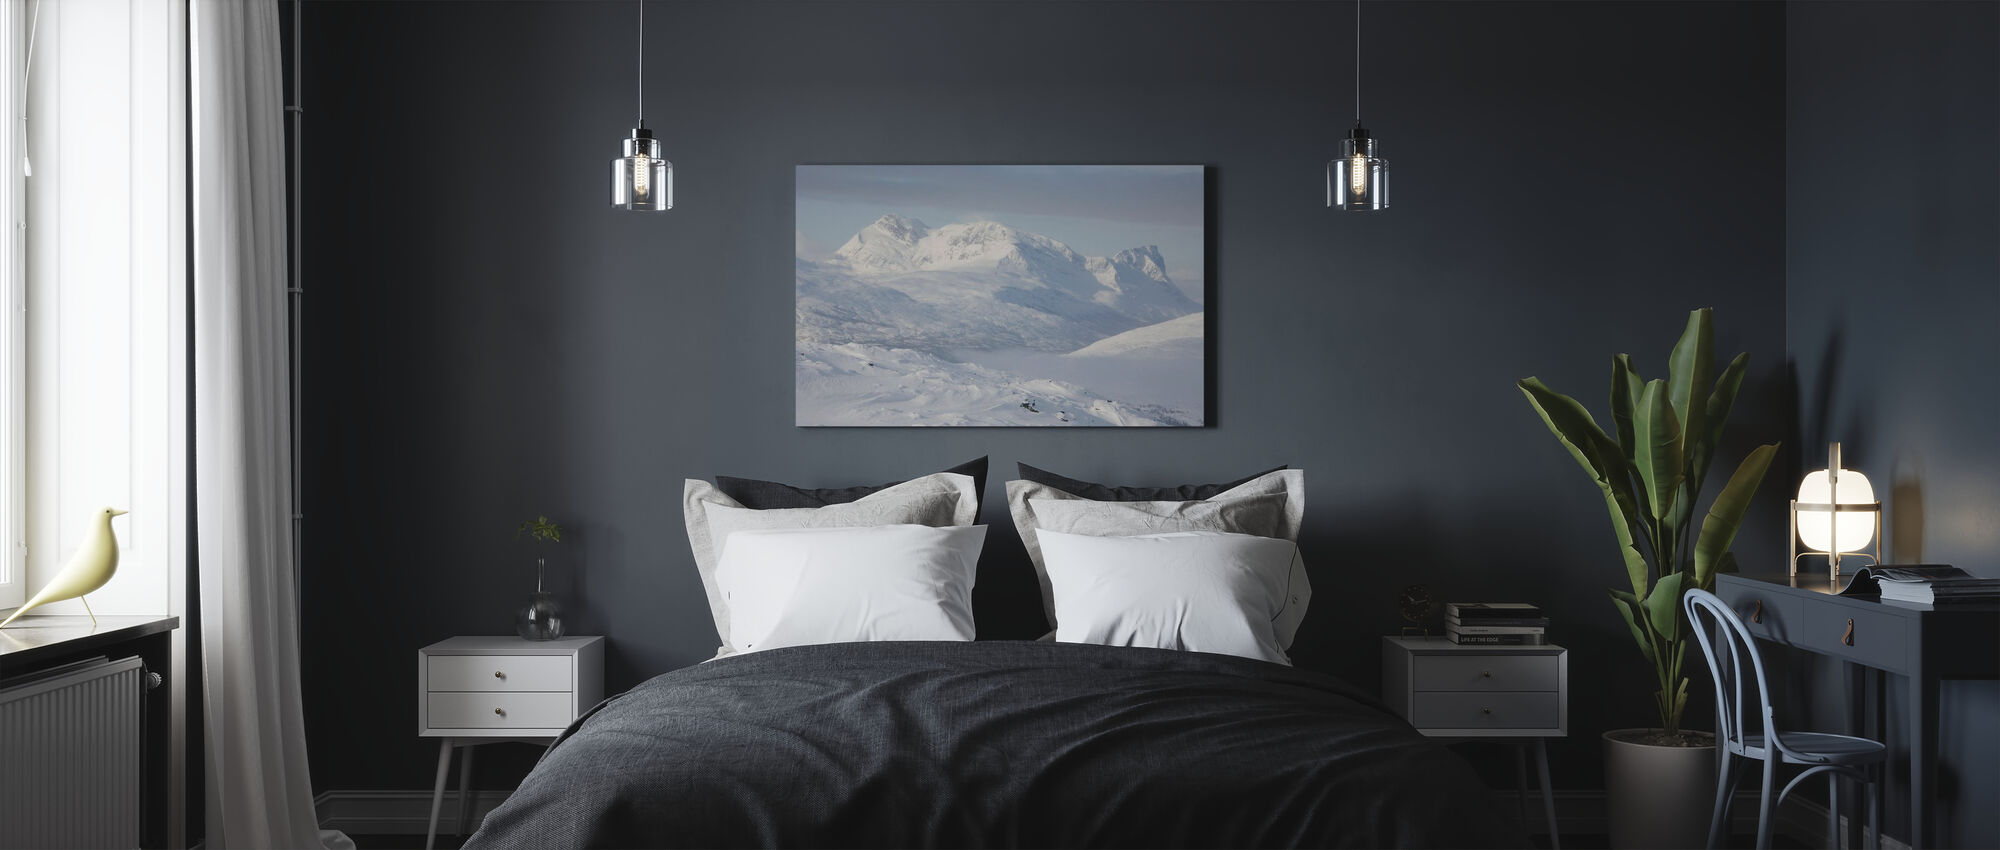 Snowy Mountains in Lapland, Sweden - Canvas print - Bedroom